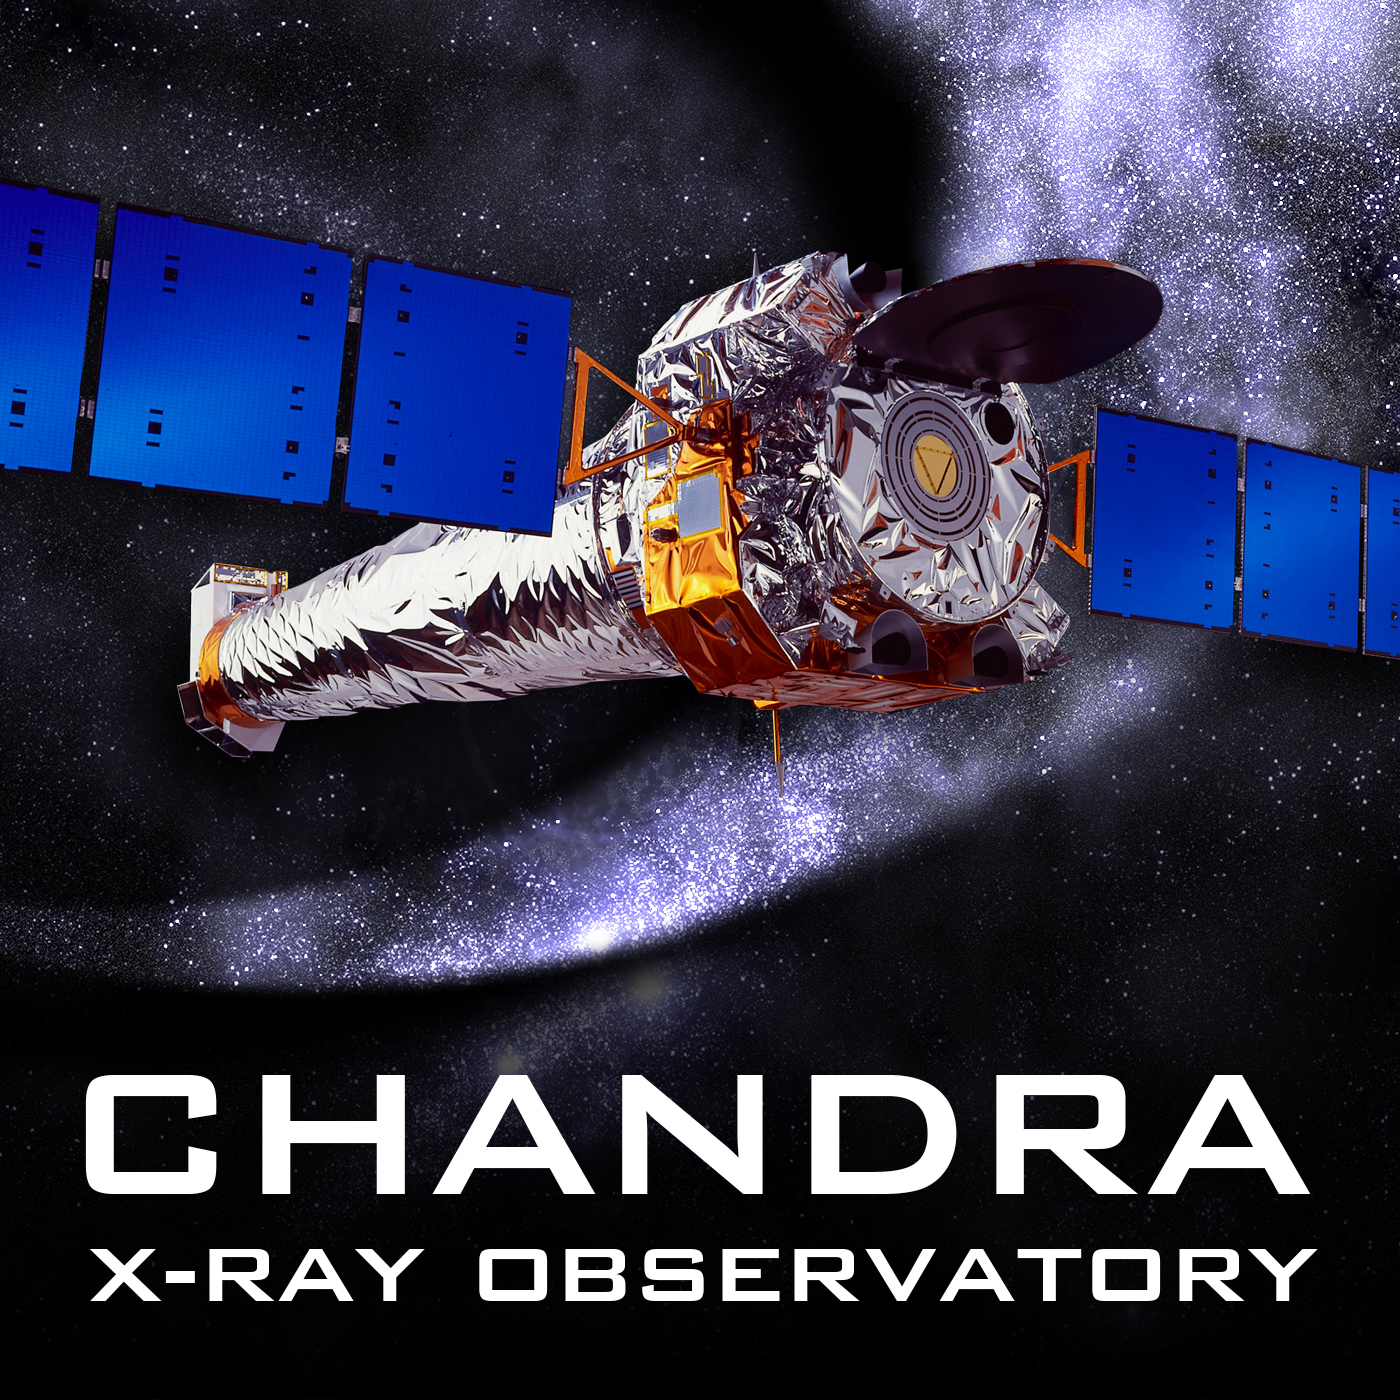 NASA's Chandra X-ray Observatory Podcasts (podcast)